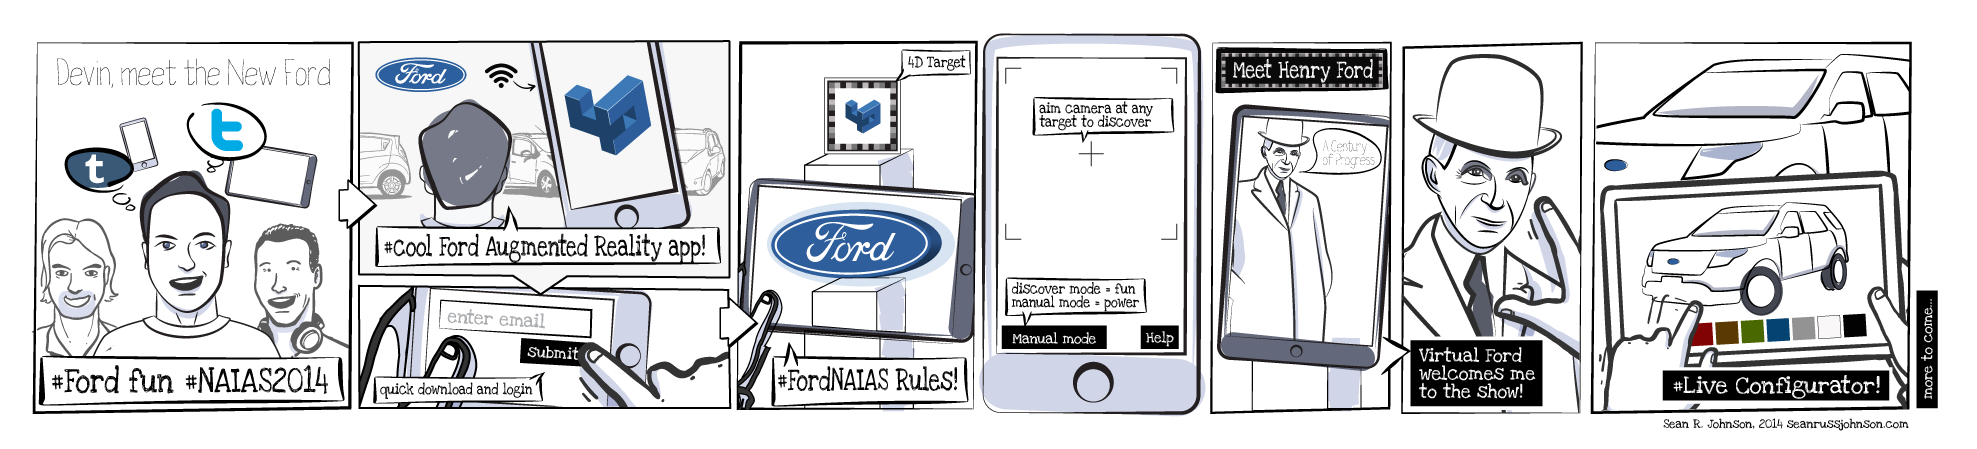 experience ford